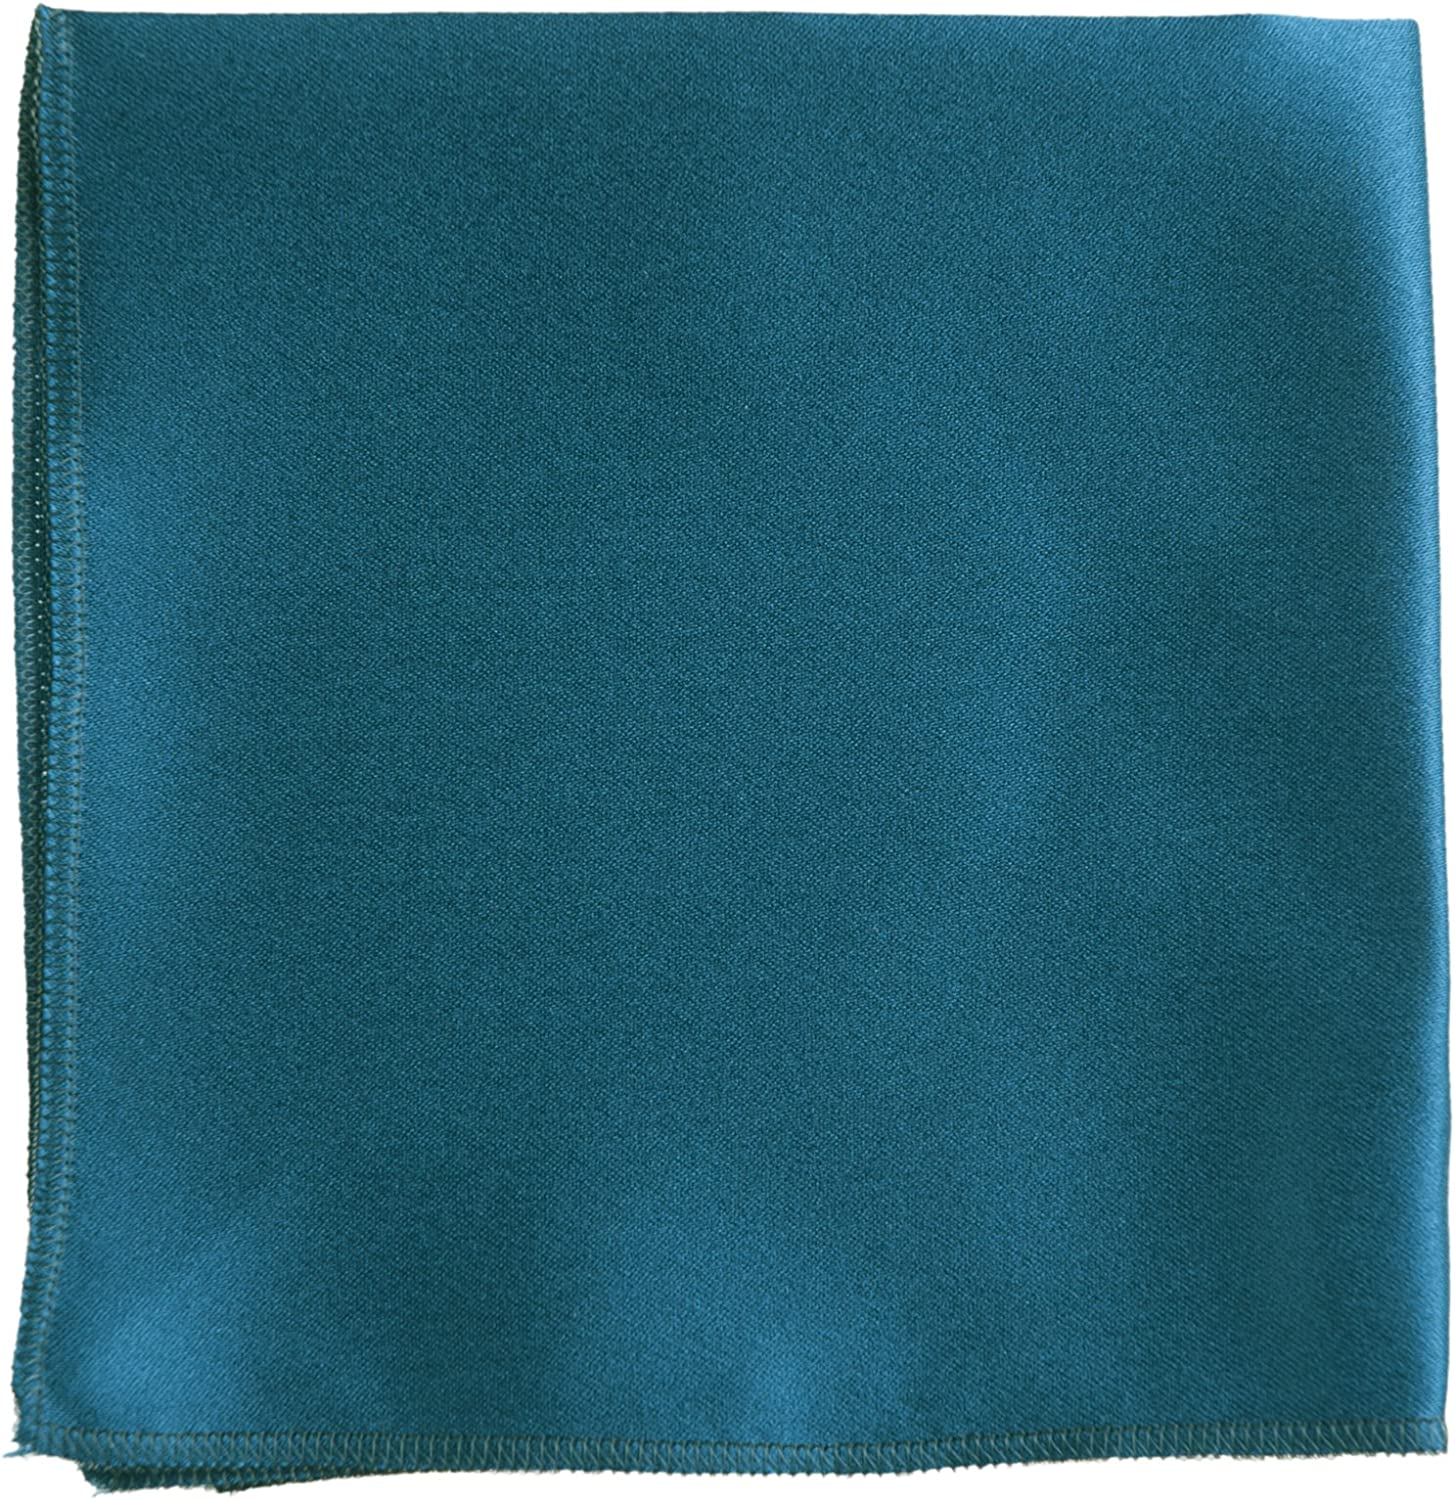 Tuxgear Mens Pocket Square Handkerchief in Sized fo Solid 2021 Sale new Colors